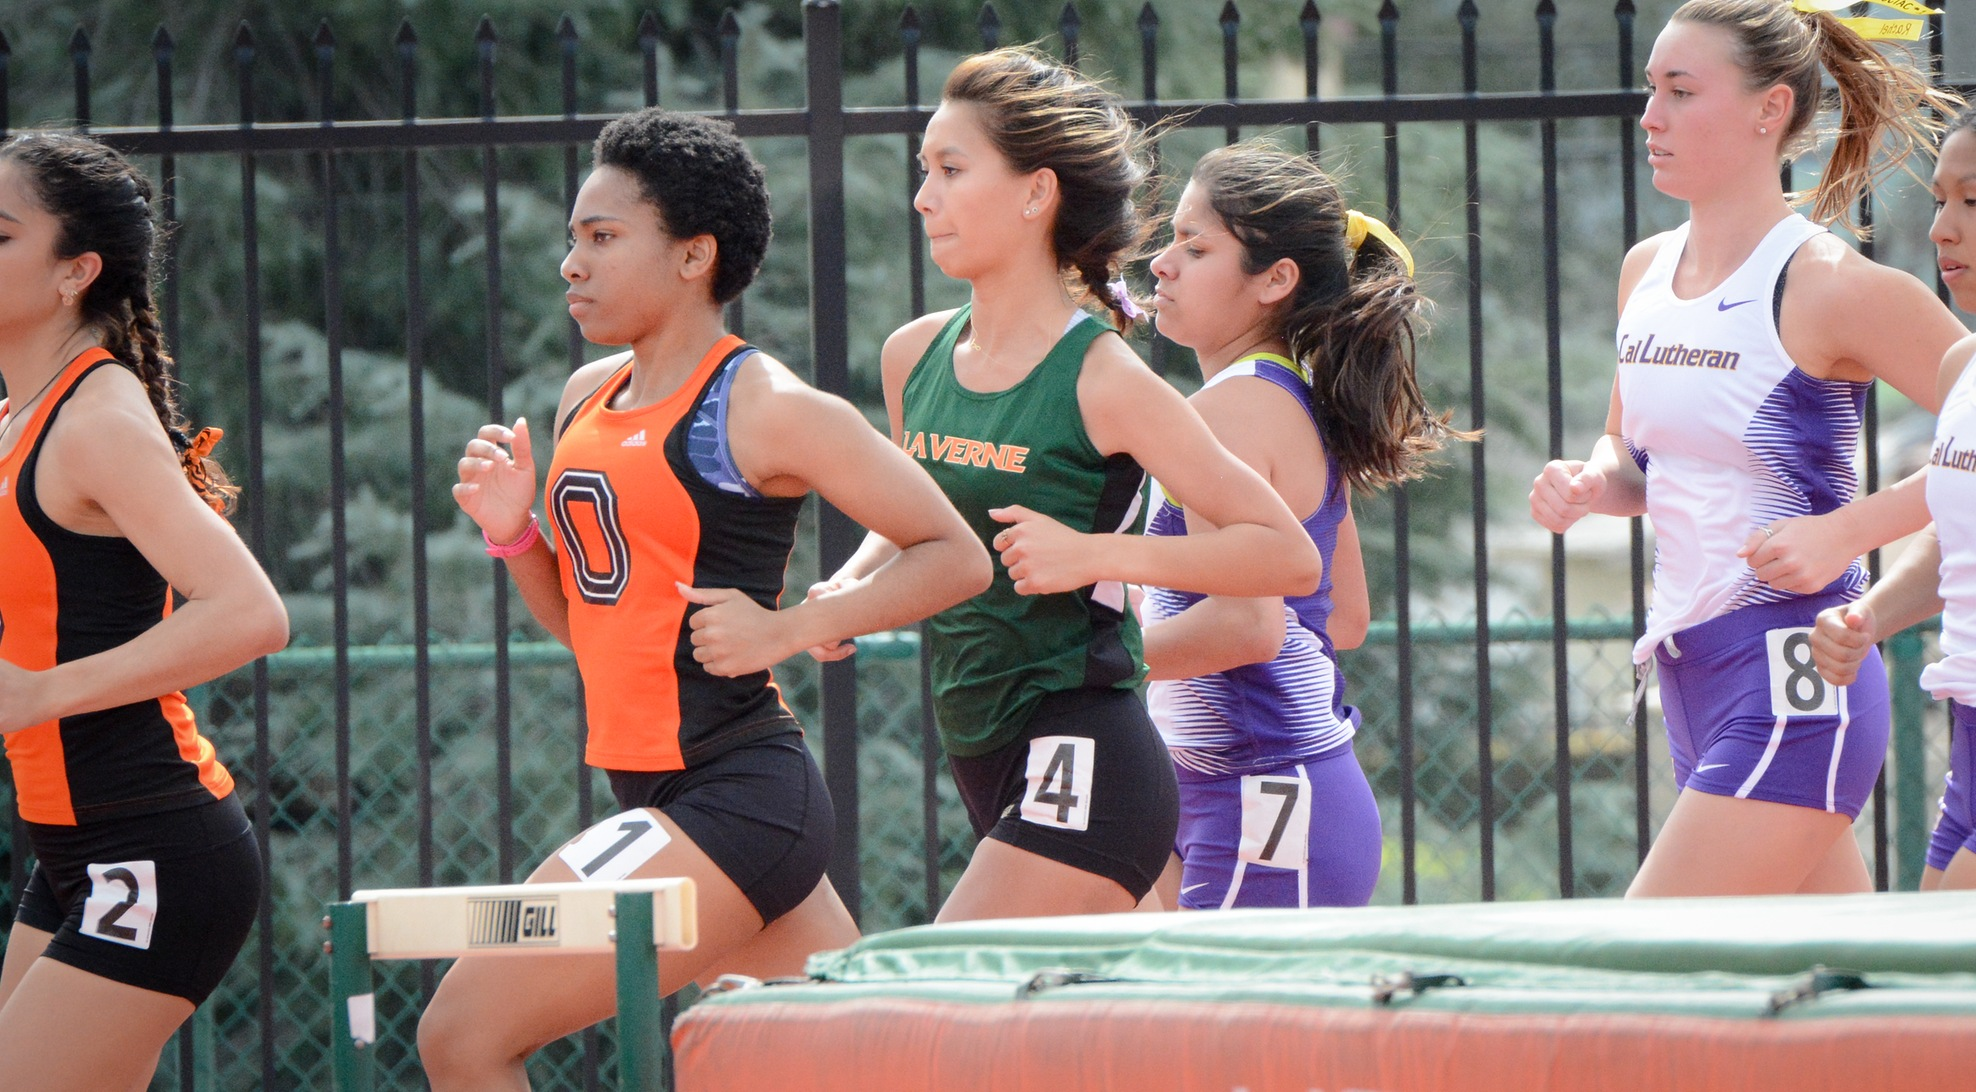 Cerrillos breaks La Verne steeplechase record